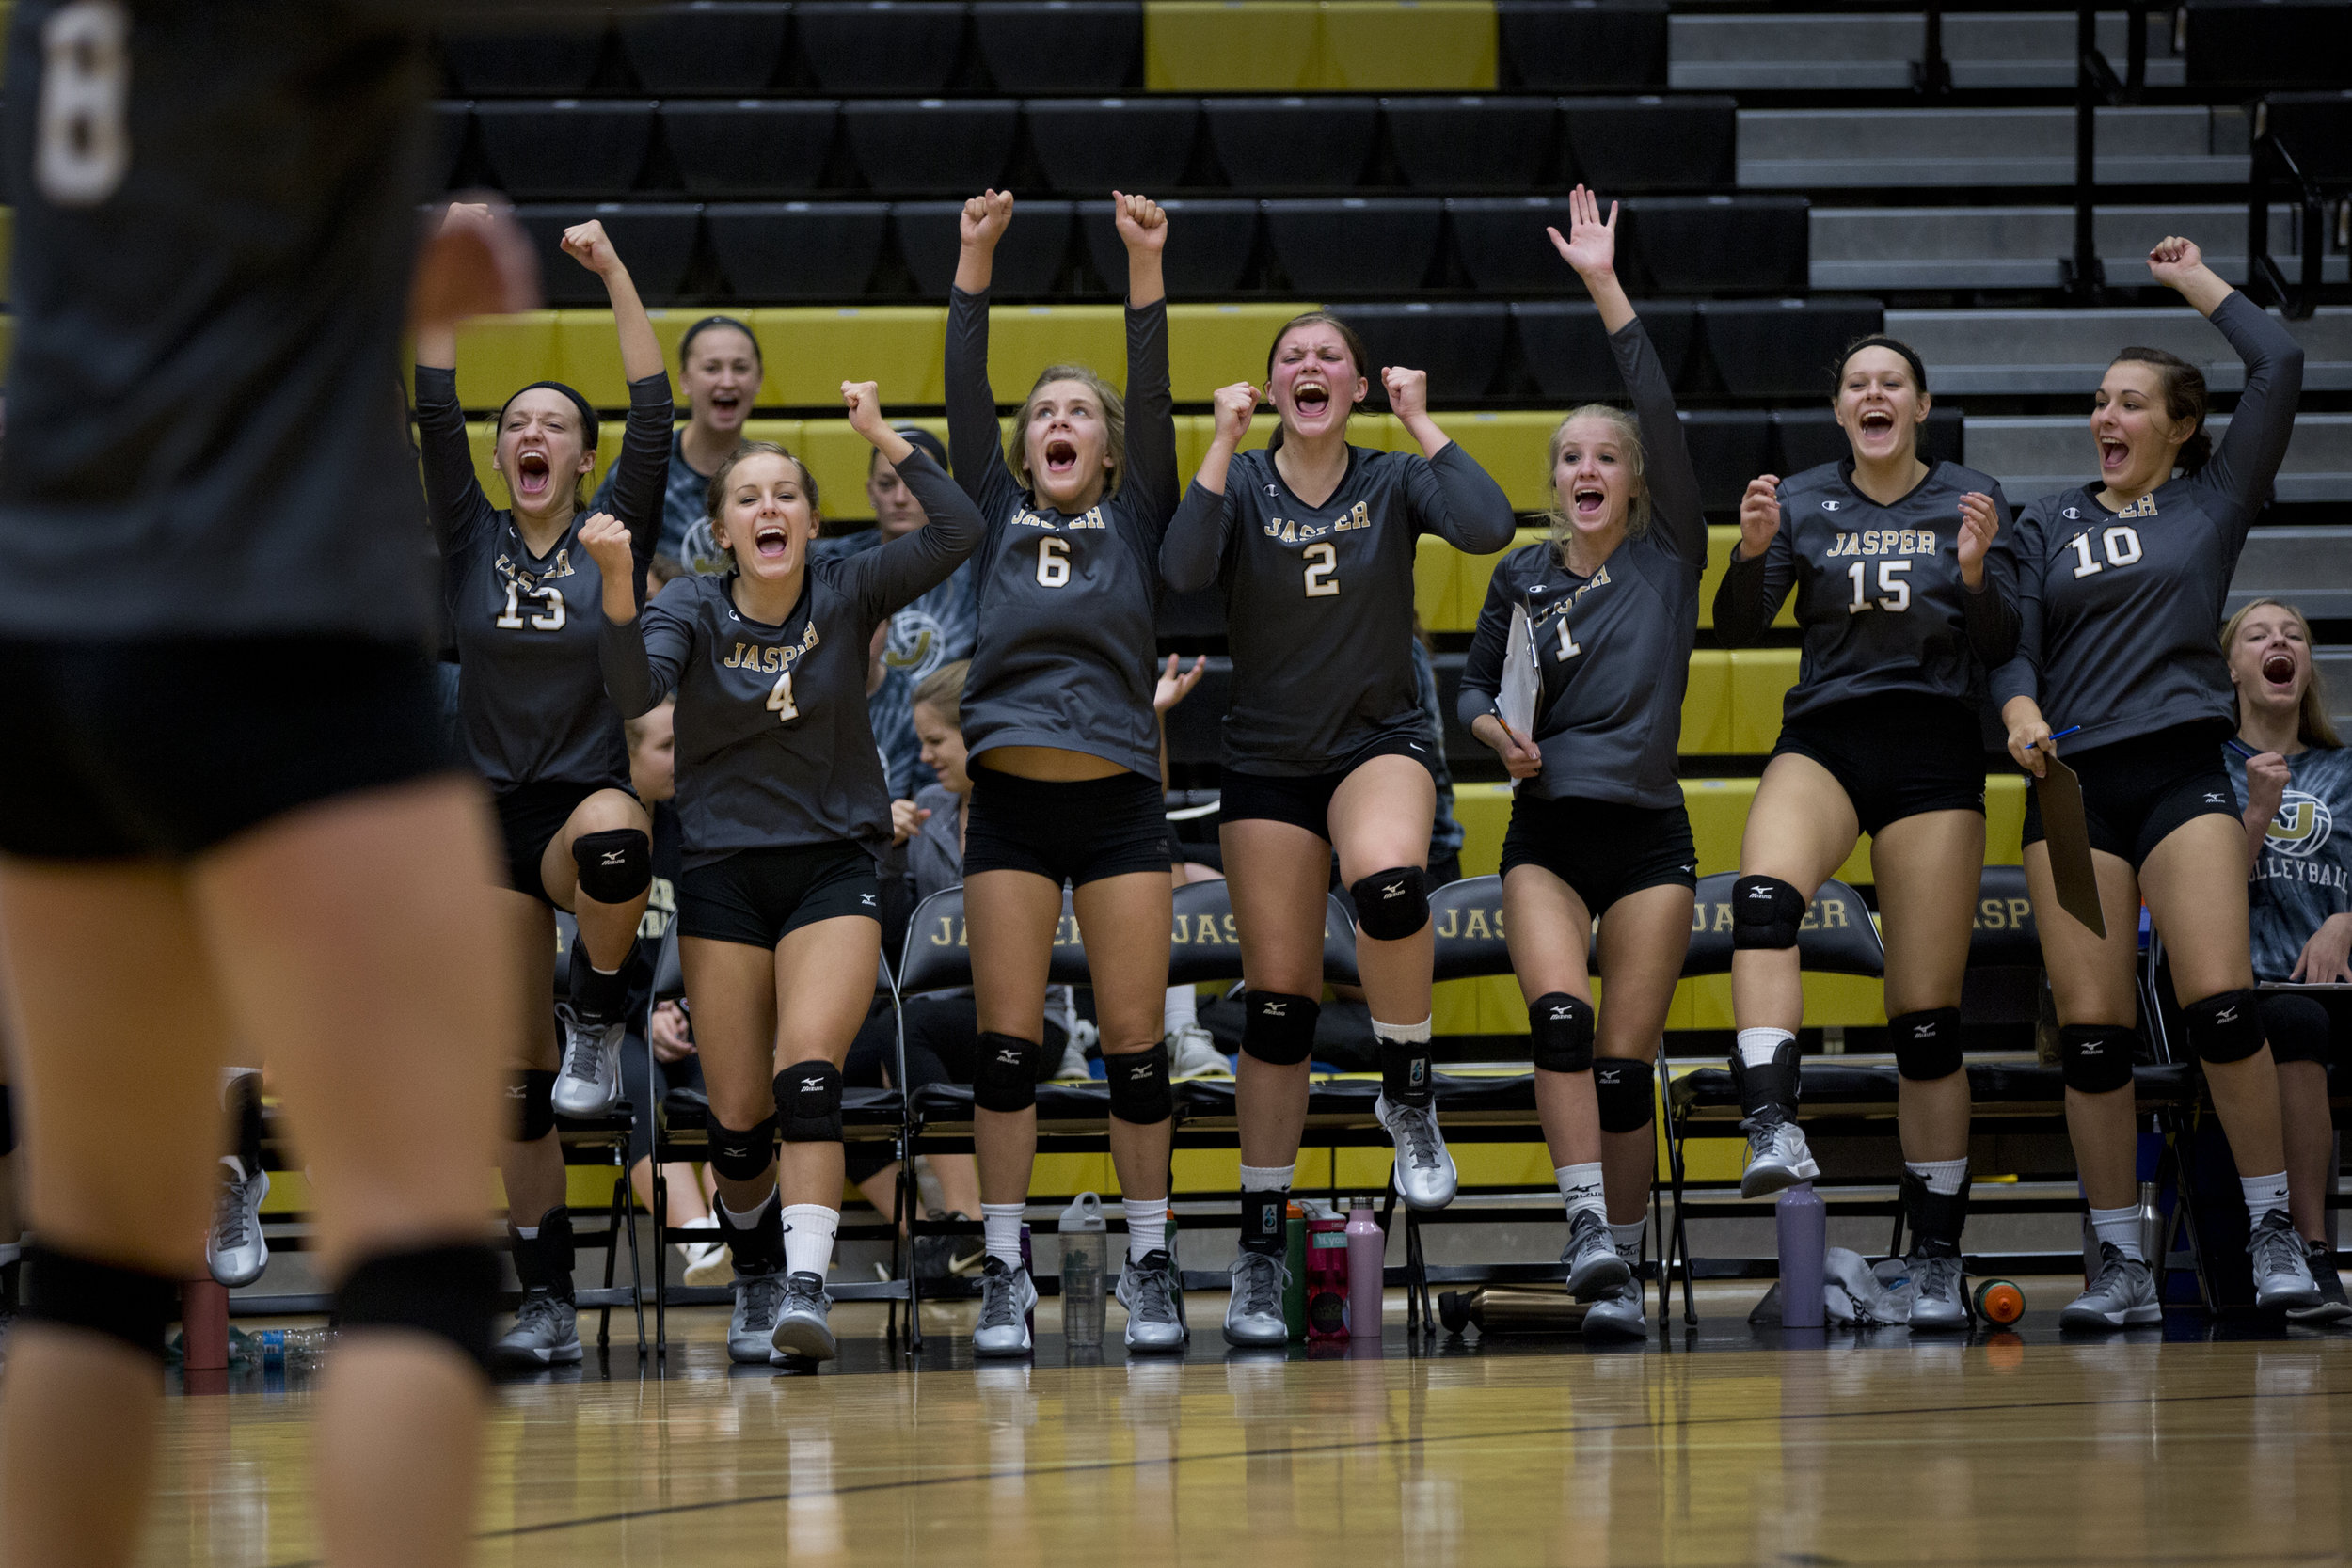 Jasper's Meredith Hilgefort, Mariah Seifert, Anna Moeller, Maddie Edwards, Rylee Hedinger, Taylor Wildman, and Breann Dorsam celebrated after winning a point during the match against Northeast Dubois in Jasper on Thursday. Jasper won in three sets.